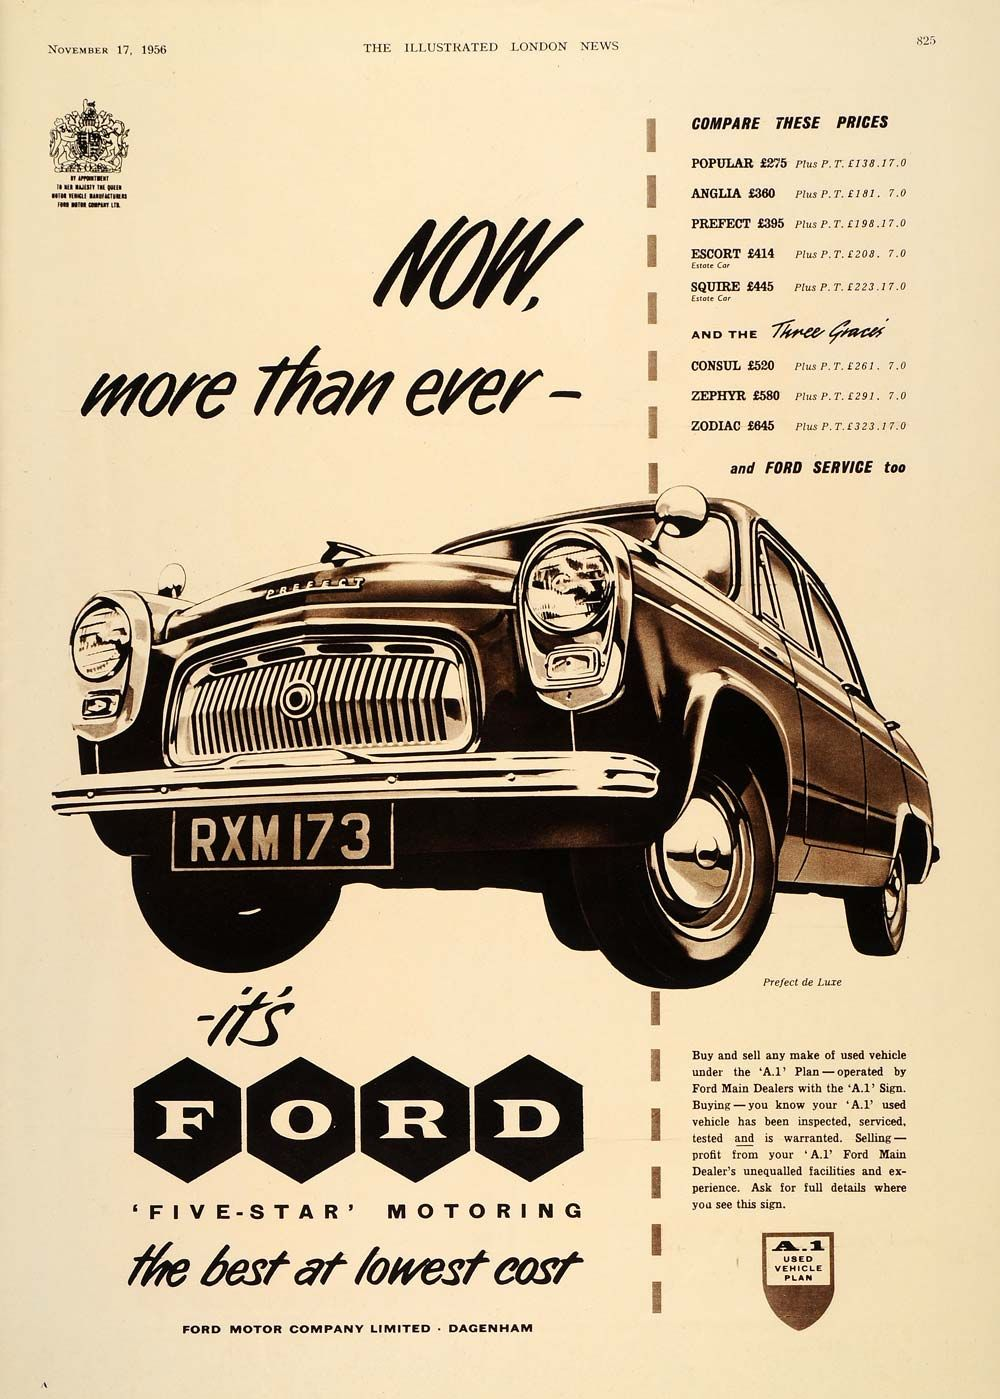 1956 Ad British Ford Perfect De Luxe Automobile Vieille Publicite Ford Pub Voiture